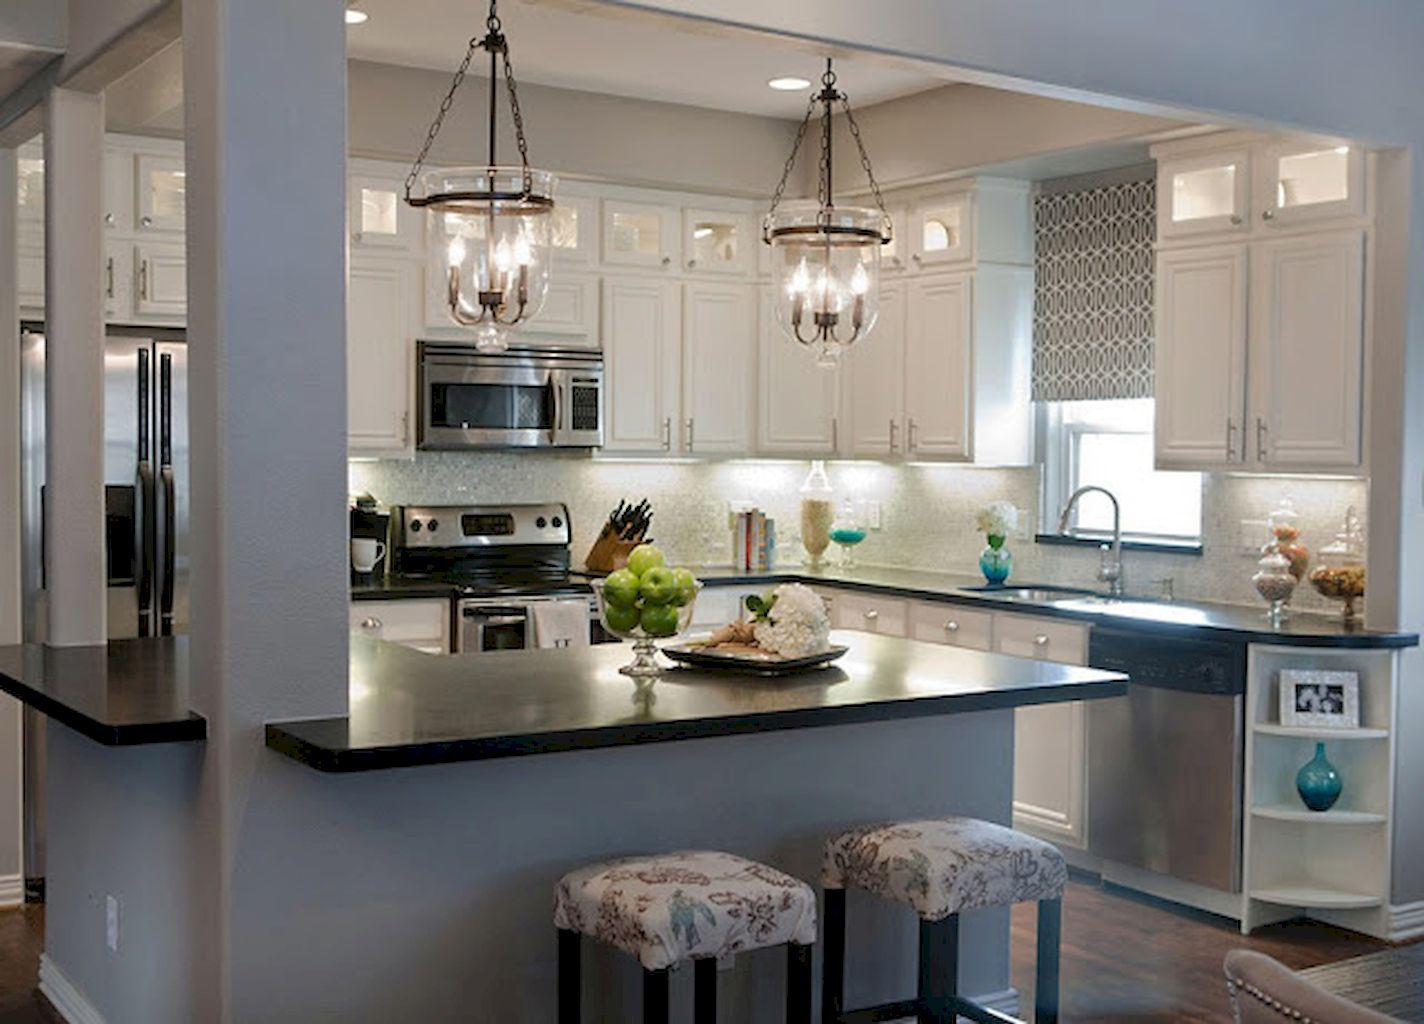 60 Small Kitchen Ideas Remodel  Kitchens Remodeled Kitchens And Delectable Small Remodeled Kitchens Ideas Review